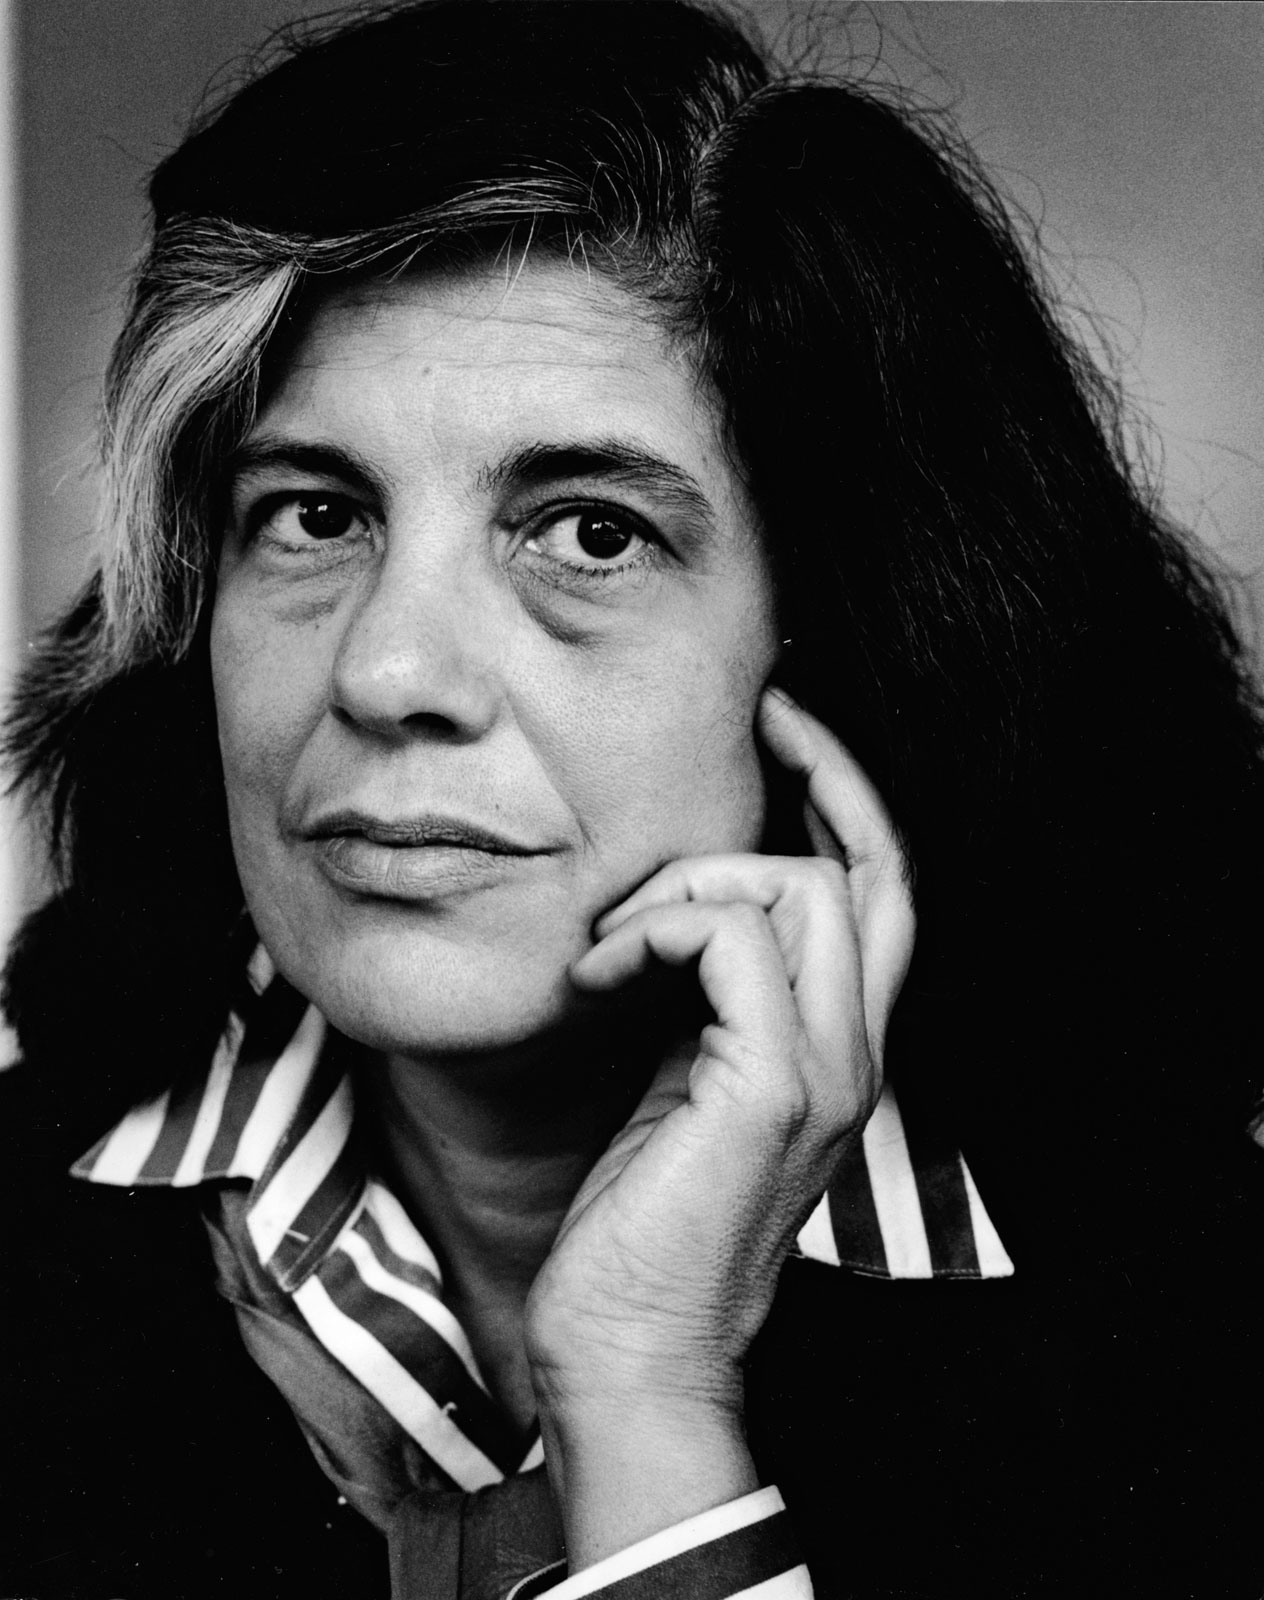 susan sontag diarysusan sontag on photography pdf, susan sontag diary, susan sontag memory, susan sontag against interpretation pdf, susan sontag books, susan sontag camp, susan sontag movie, susan sontag essay, susan sontag über fotografie, susan sontag goodreads, susan sontag diaries pdf, susan sontag carti, susan sontag film list, susan sontag fotoğraf üzerine pdf, susan sontag son, susan sontag o fotografii pdf, susan sontag regarding, susan sontag on photography quotes, susan sontag films, susan sontag john berger